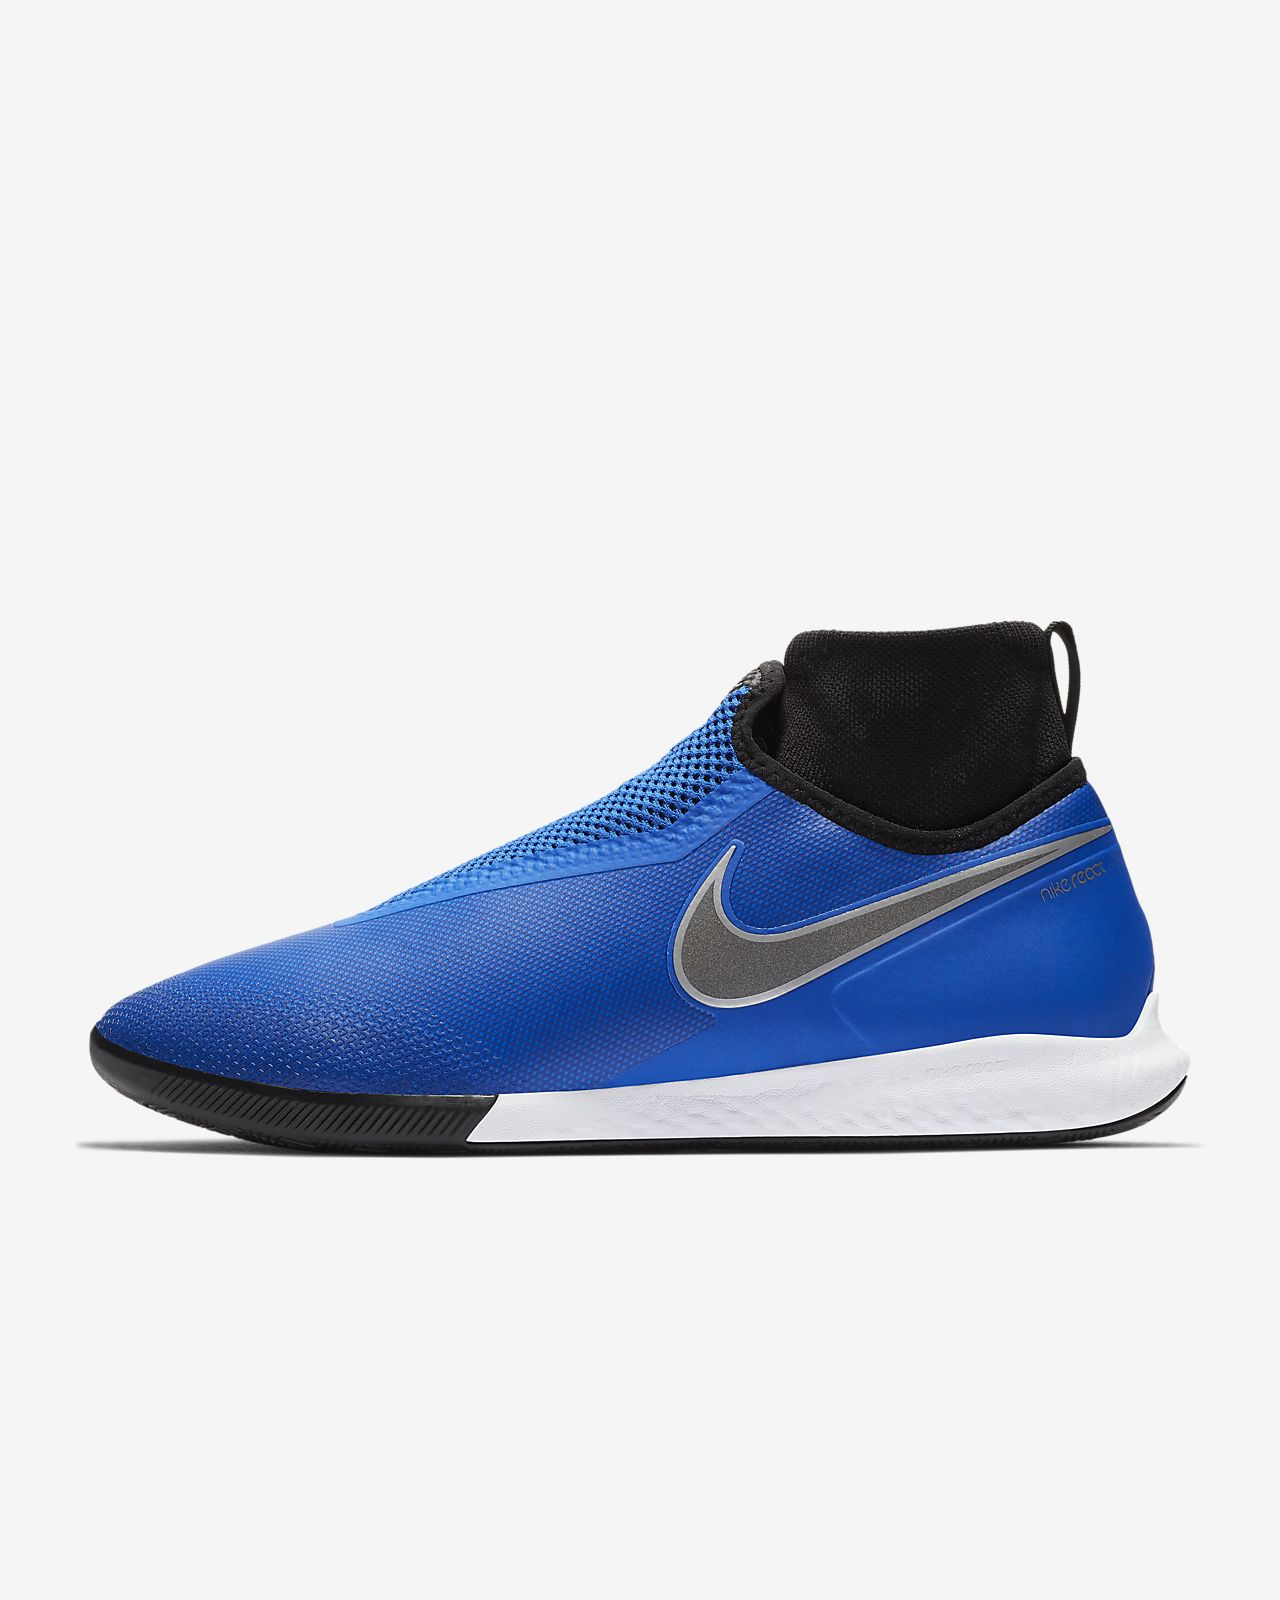 5463296ee182 Nike React PhantomVSN Pro Dynamic Fit IC Indoor Court Football Boot ...